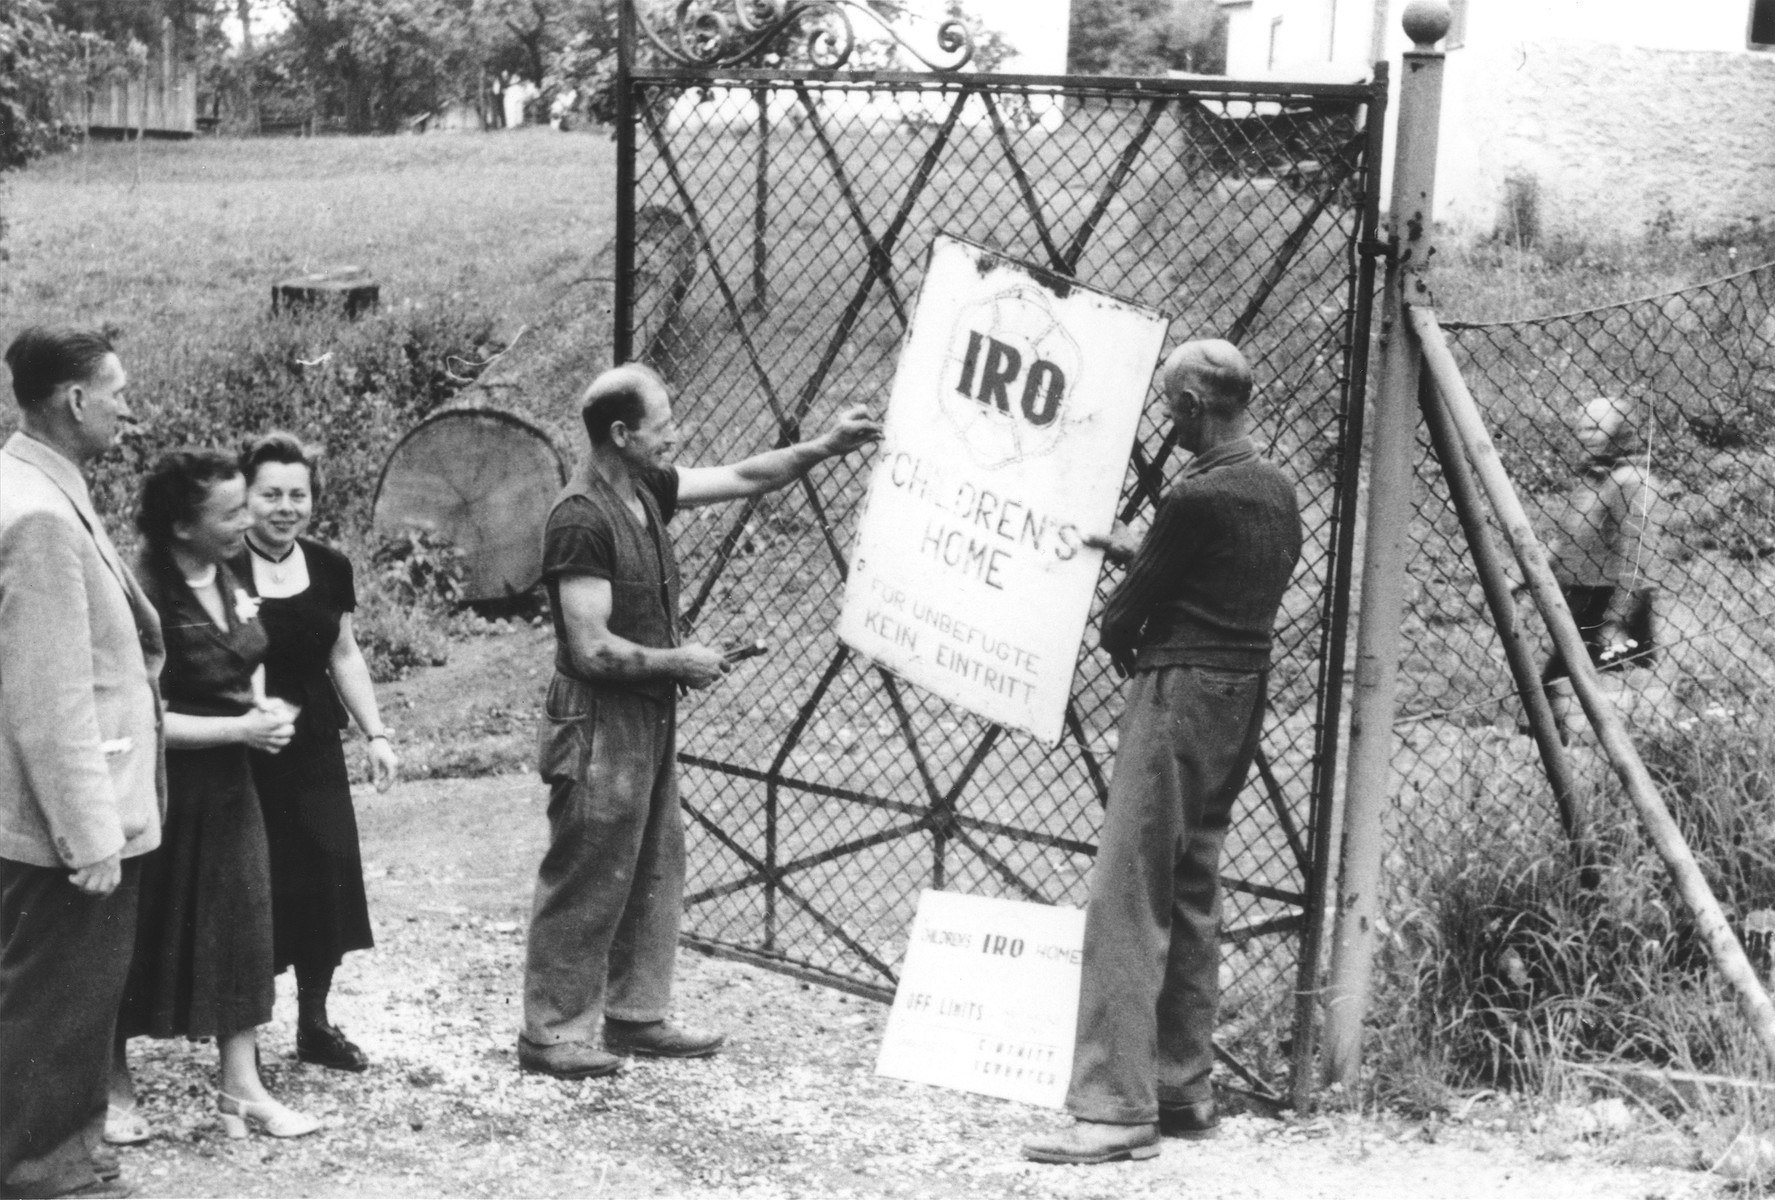 Workmen hang up a sign on the gate of the new IRO [International Refugee Organization] children's home in Leitendorf, Austria.